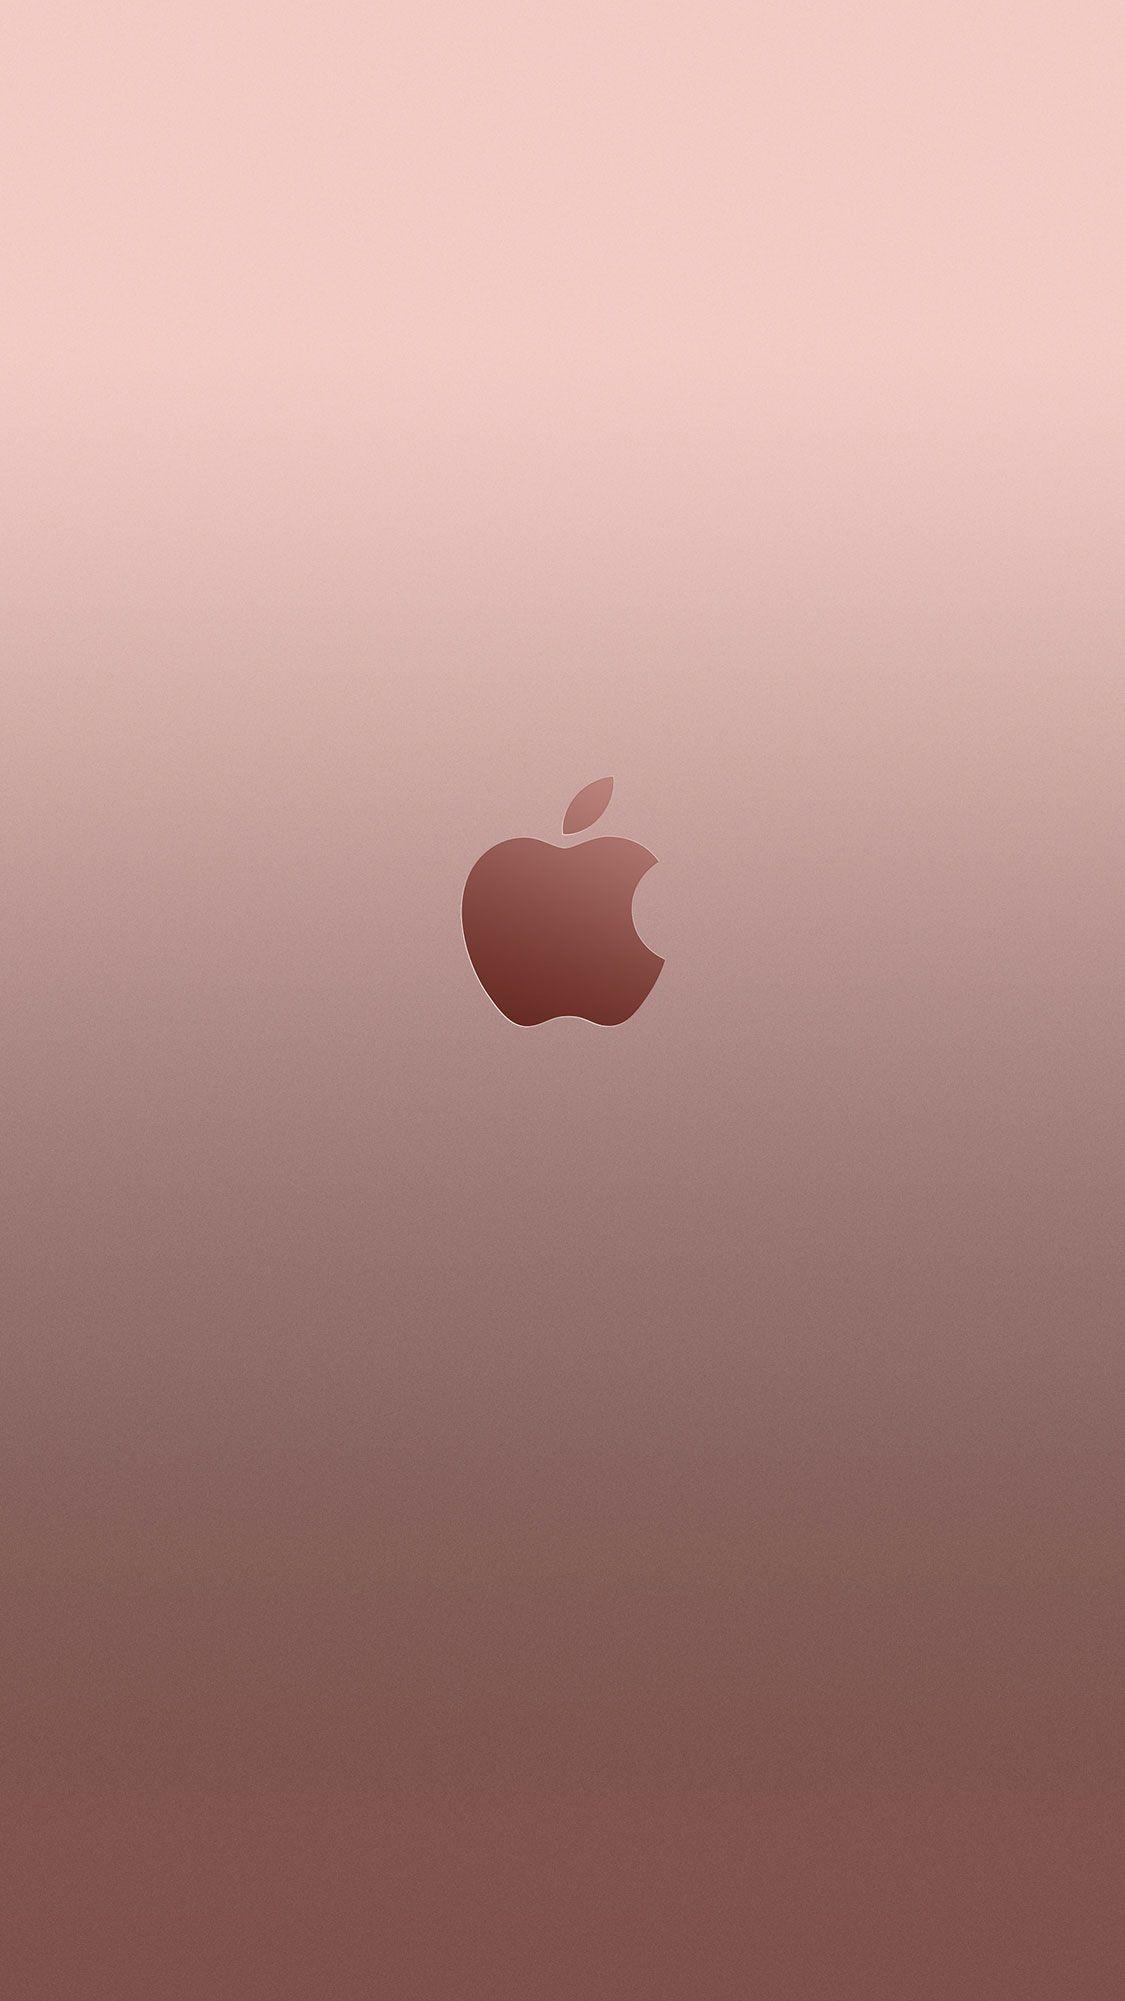 20+ New iPhone 6 & 6S Wallpapers & Backgrounds in HD Quality